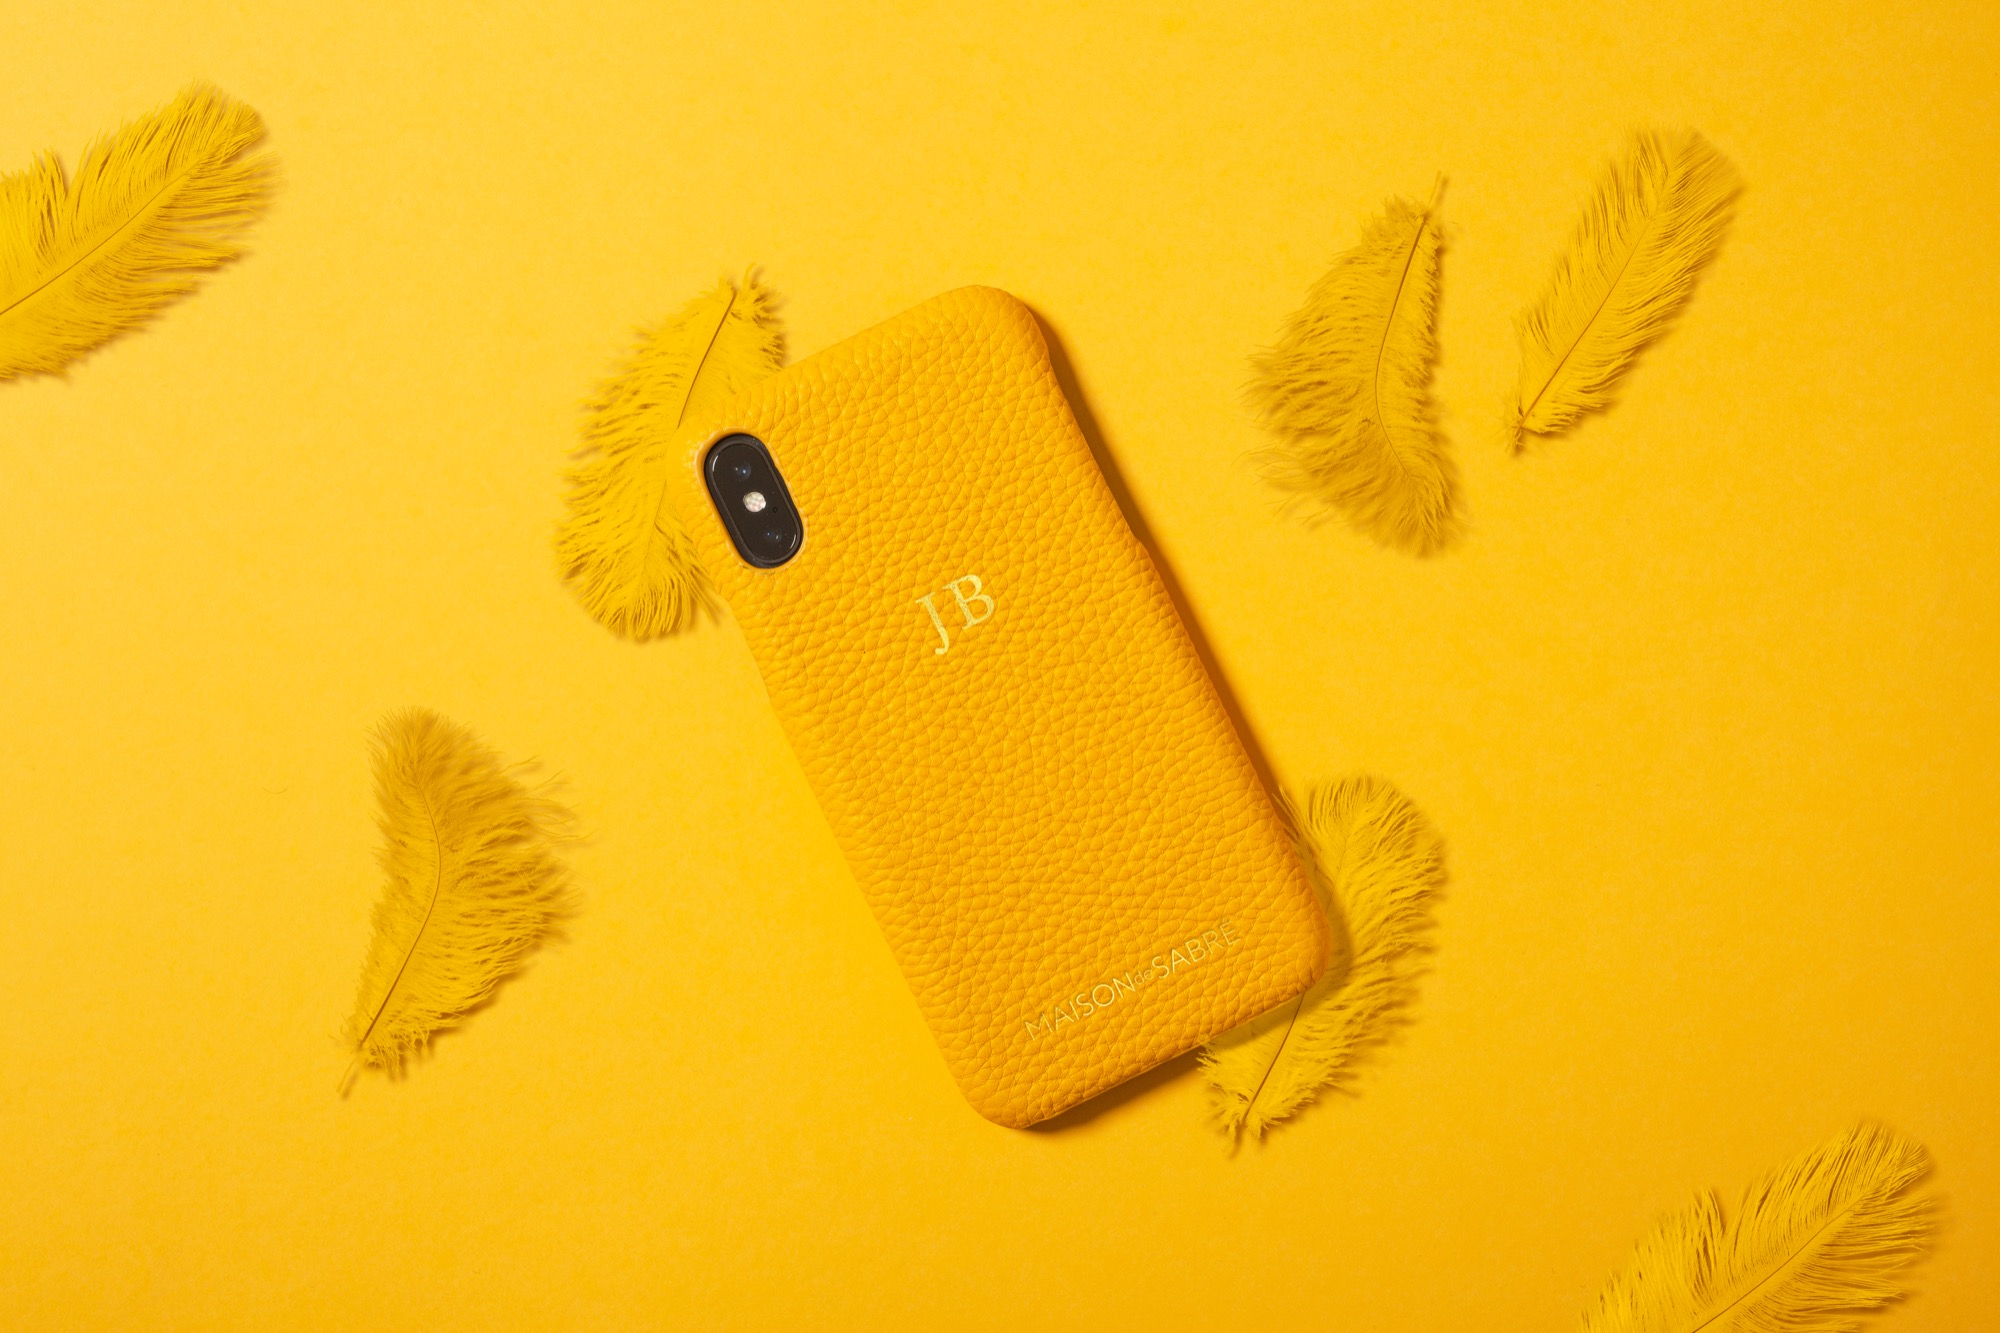 Maison de Sabre - iPhone X Canary Yellow in premium bovine pebble grain leather with gold monogramRRP: 79.99 AUDSize: iPhone XStockist: Maison de SabréIn store: Currently Available